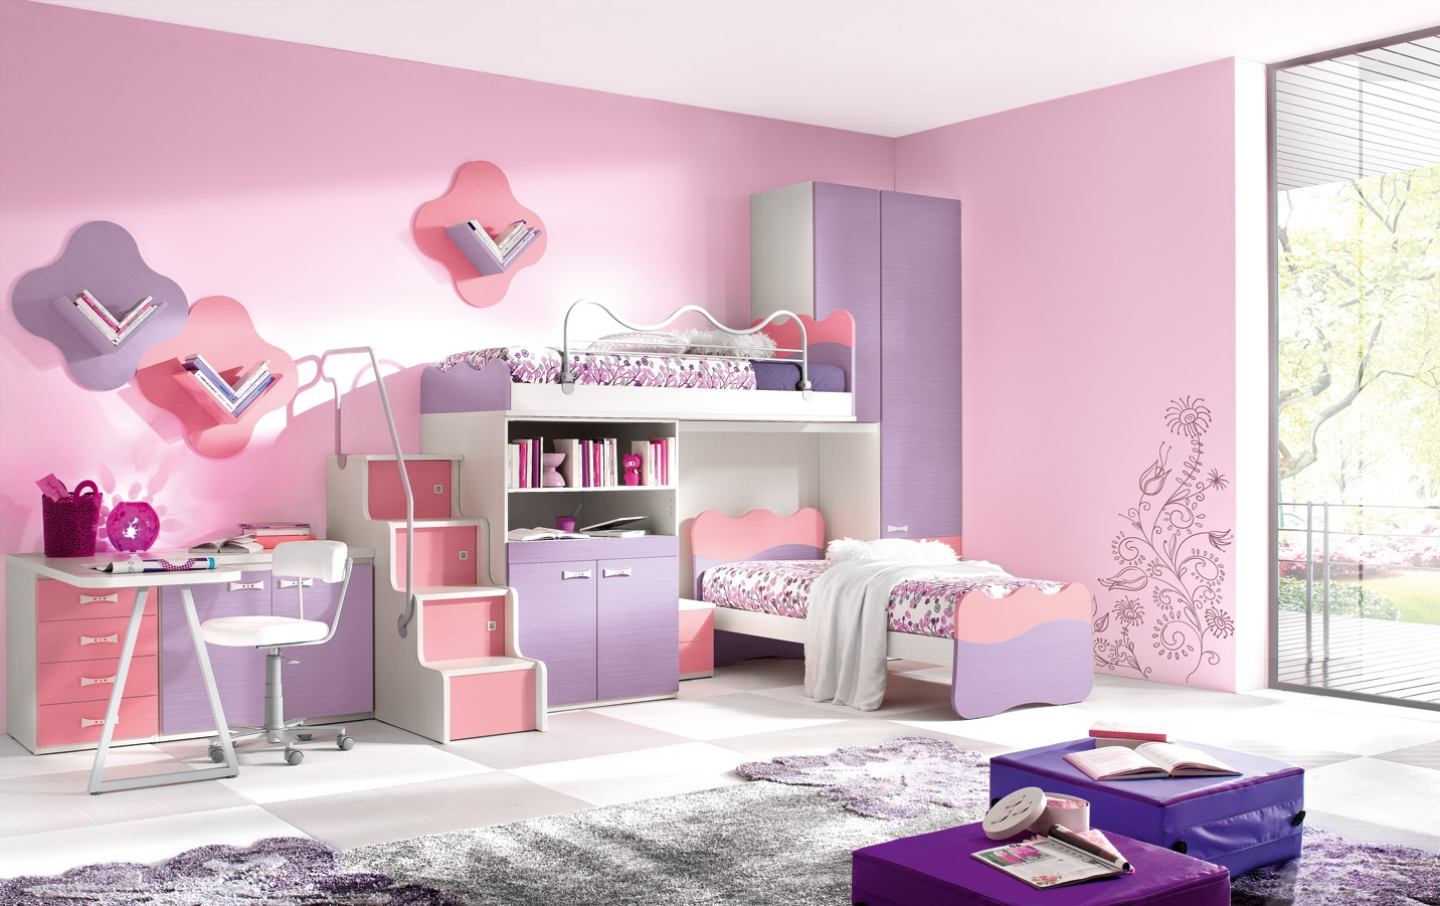 Bedroom wall designs for teenage girls - Bedrooms Decorations Decorating Wall Bedroom Elegant Gray Bedroom Bedroom Decorations For Teenage Girls